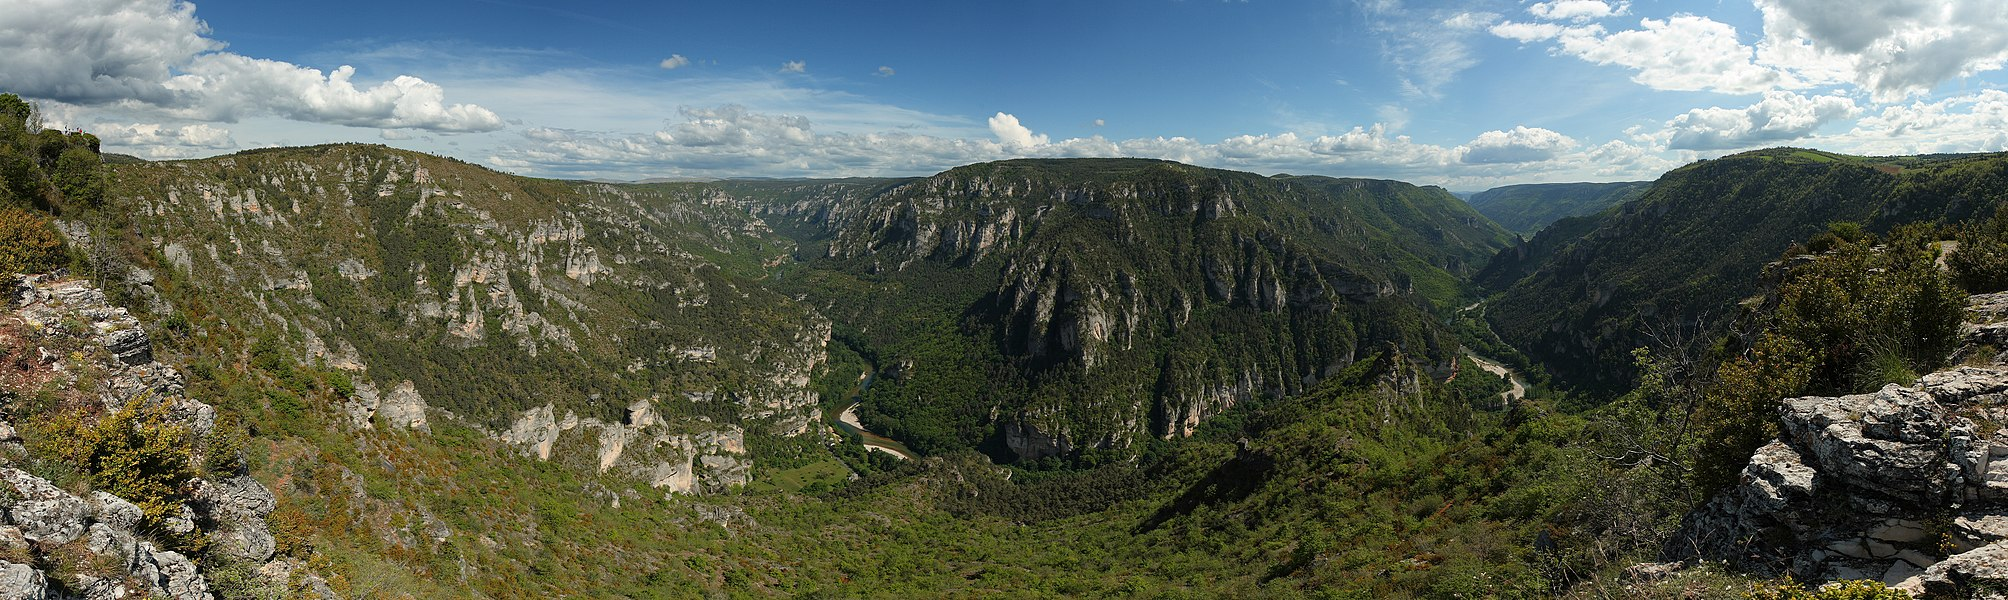 Tarn gorge, taken near the point sublime (which can be seen on the far left). This picture features the Baumes cirque on the left, and the Causse Méjéan plateau on the center. It is a mosaic of 8 photos (2x4) taken with a Canon EOS 400D camera and a EF-S 17-55mm IS f/2.8 lens set at 17mm. Exposition 1/320s, f/8.0 and ISO 100. Resulting horizontal field of view is 248°. Stitching was done with Hugin OS X and Enblend 3.